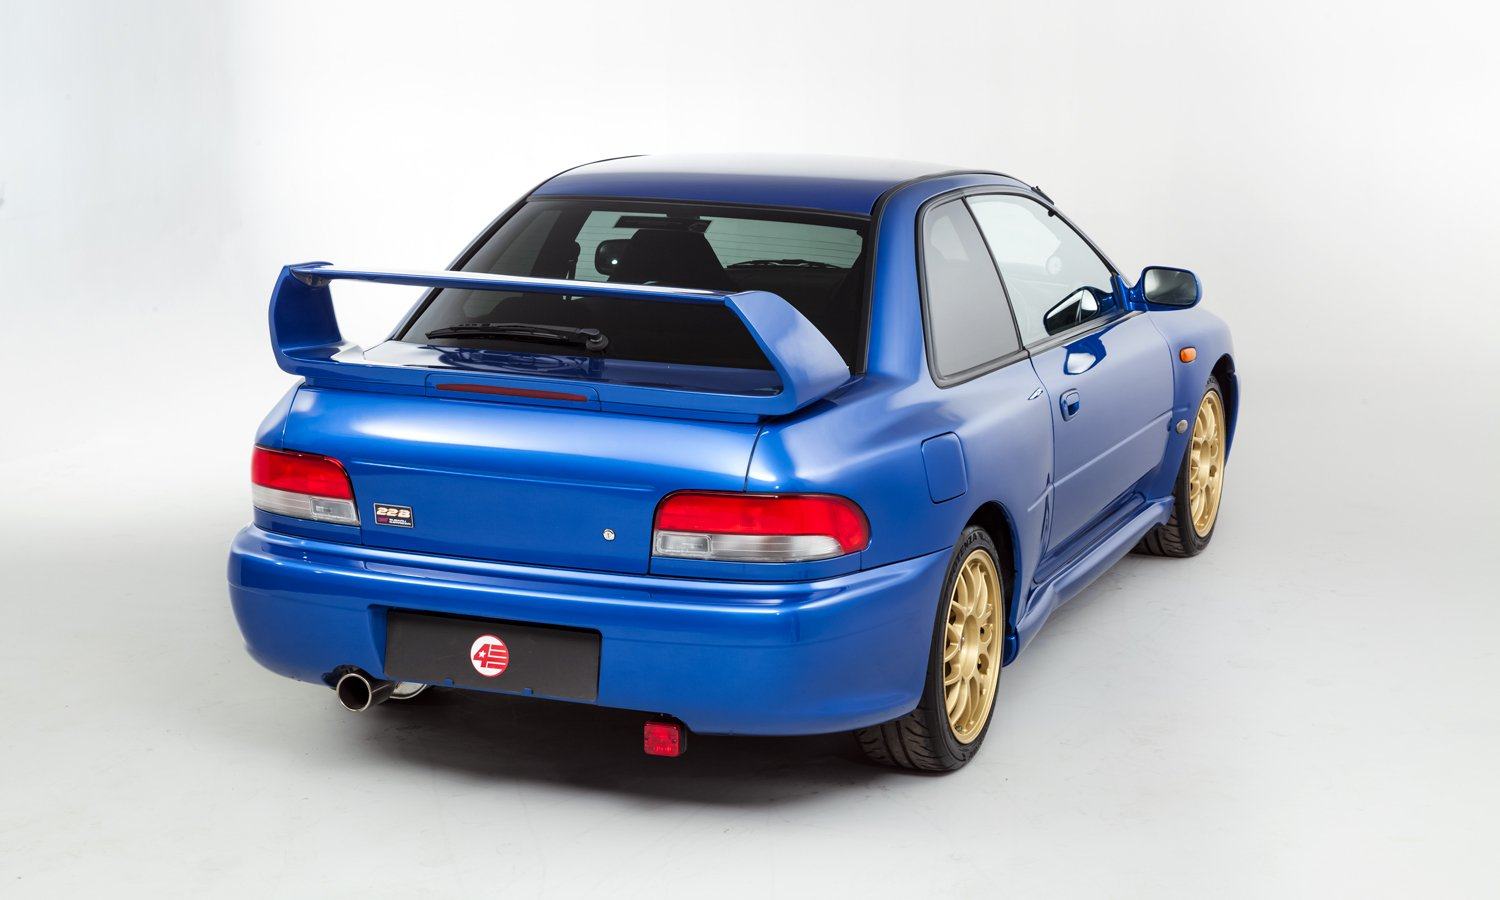 Subaru-Impreza-22B-STi-1998-for-sale-5